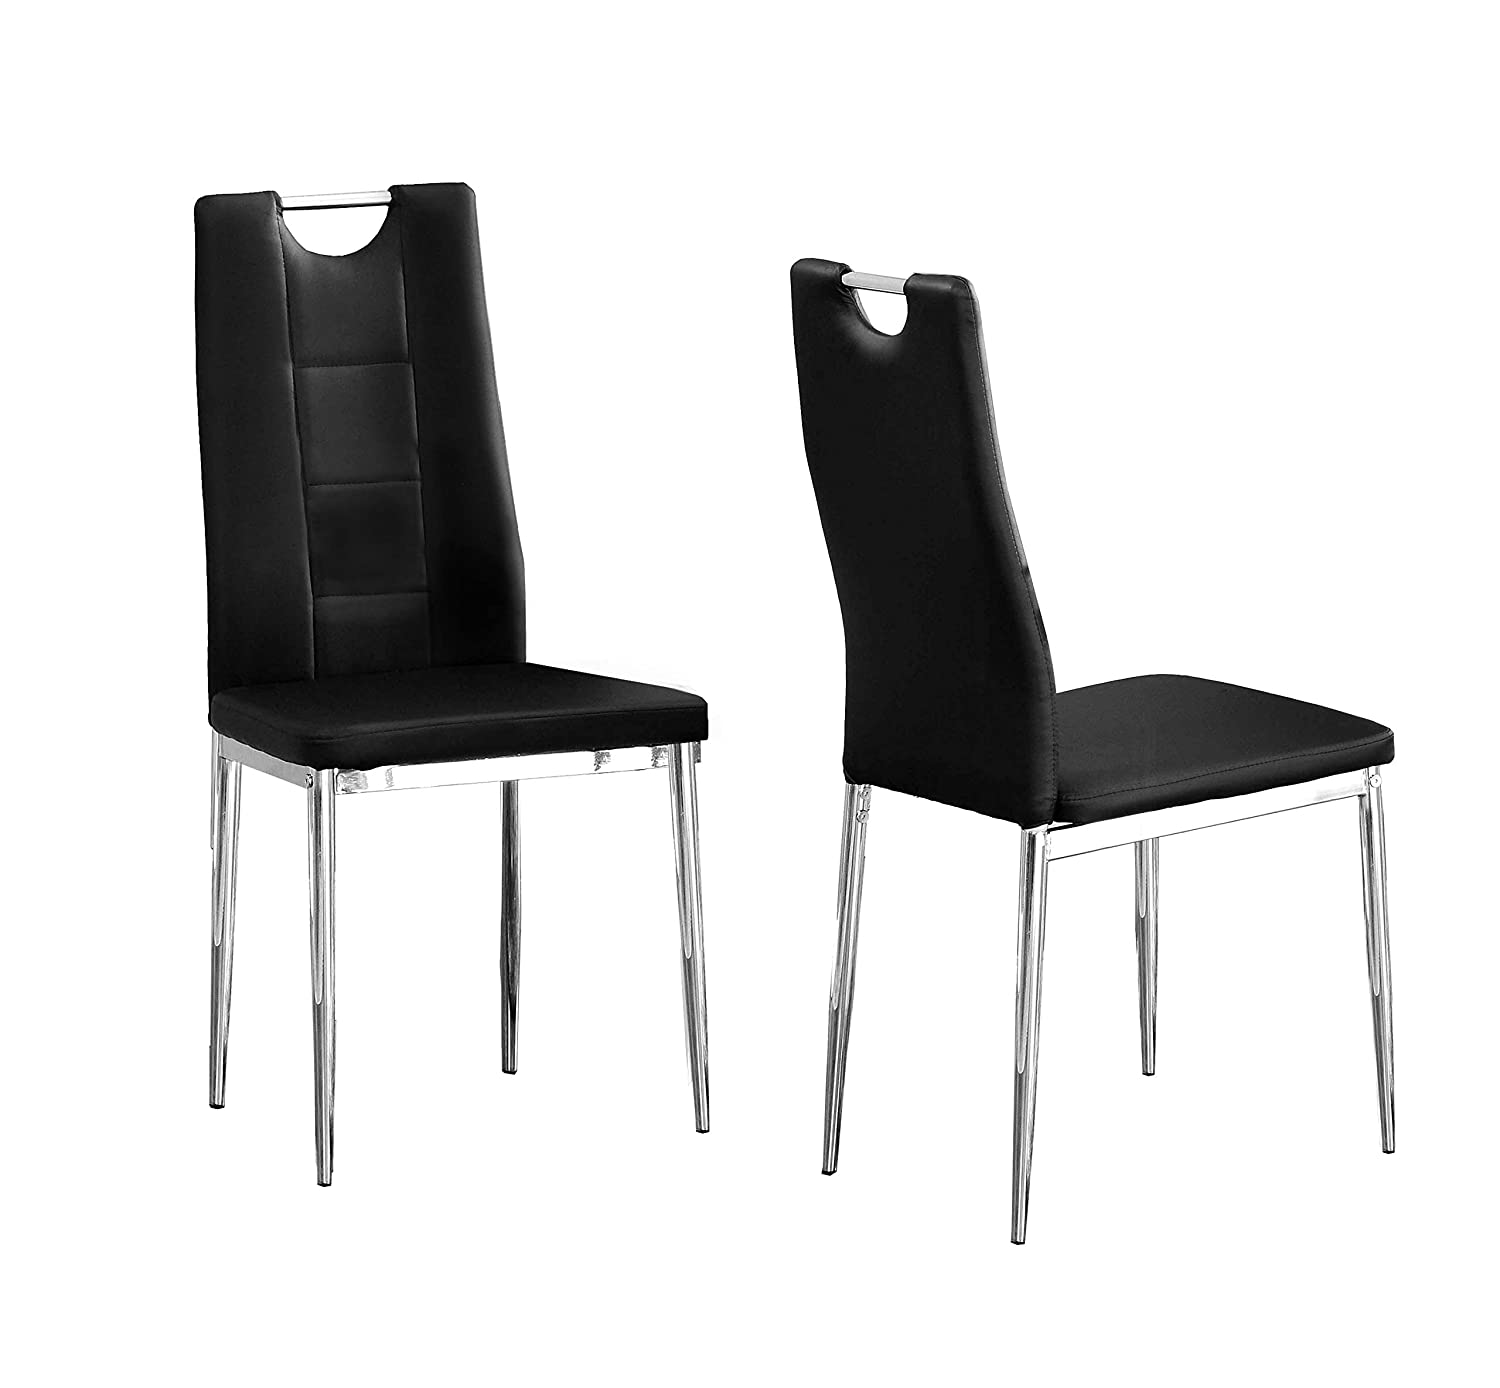 Best Master Furniture Crystal Dining Chairs Set of 2, Black